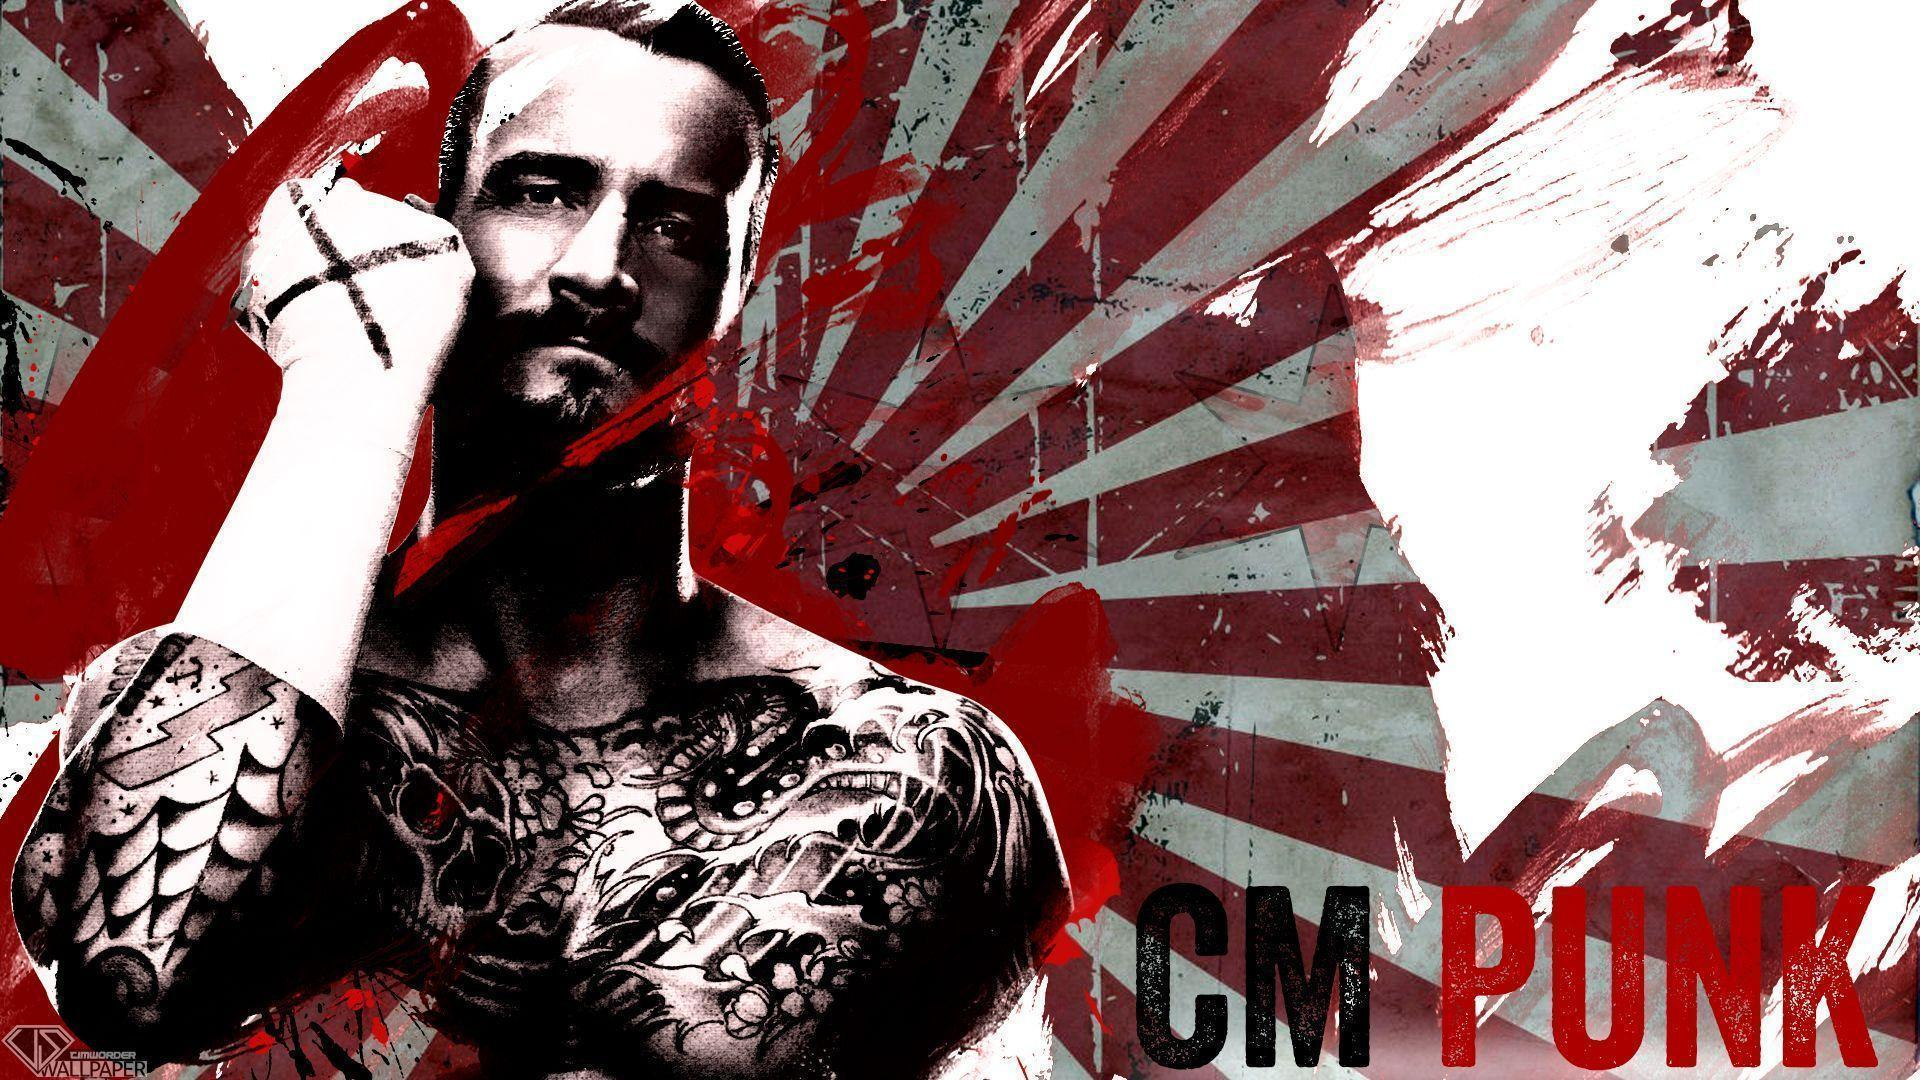 CM Punk Respect wallpapers by timWorder